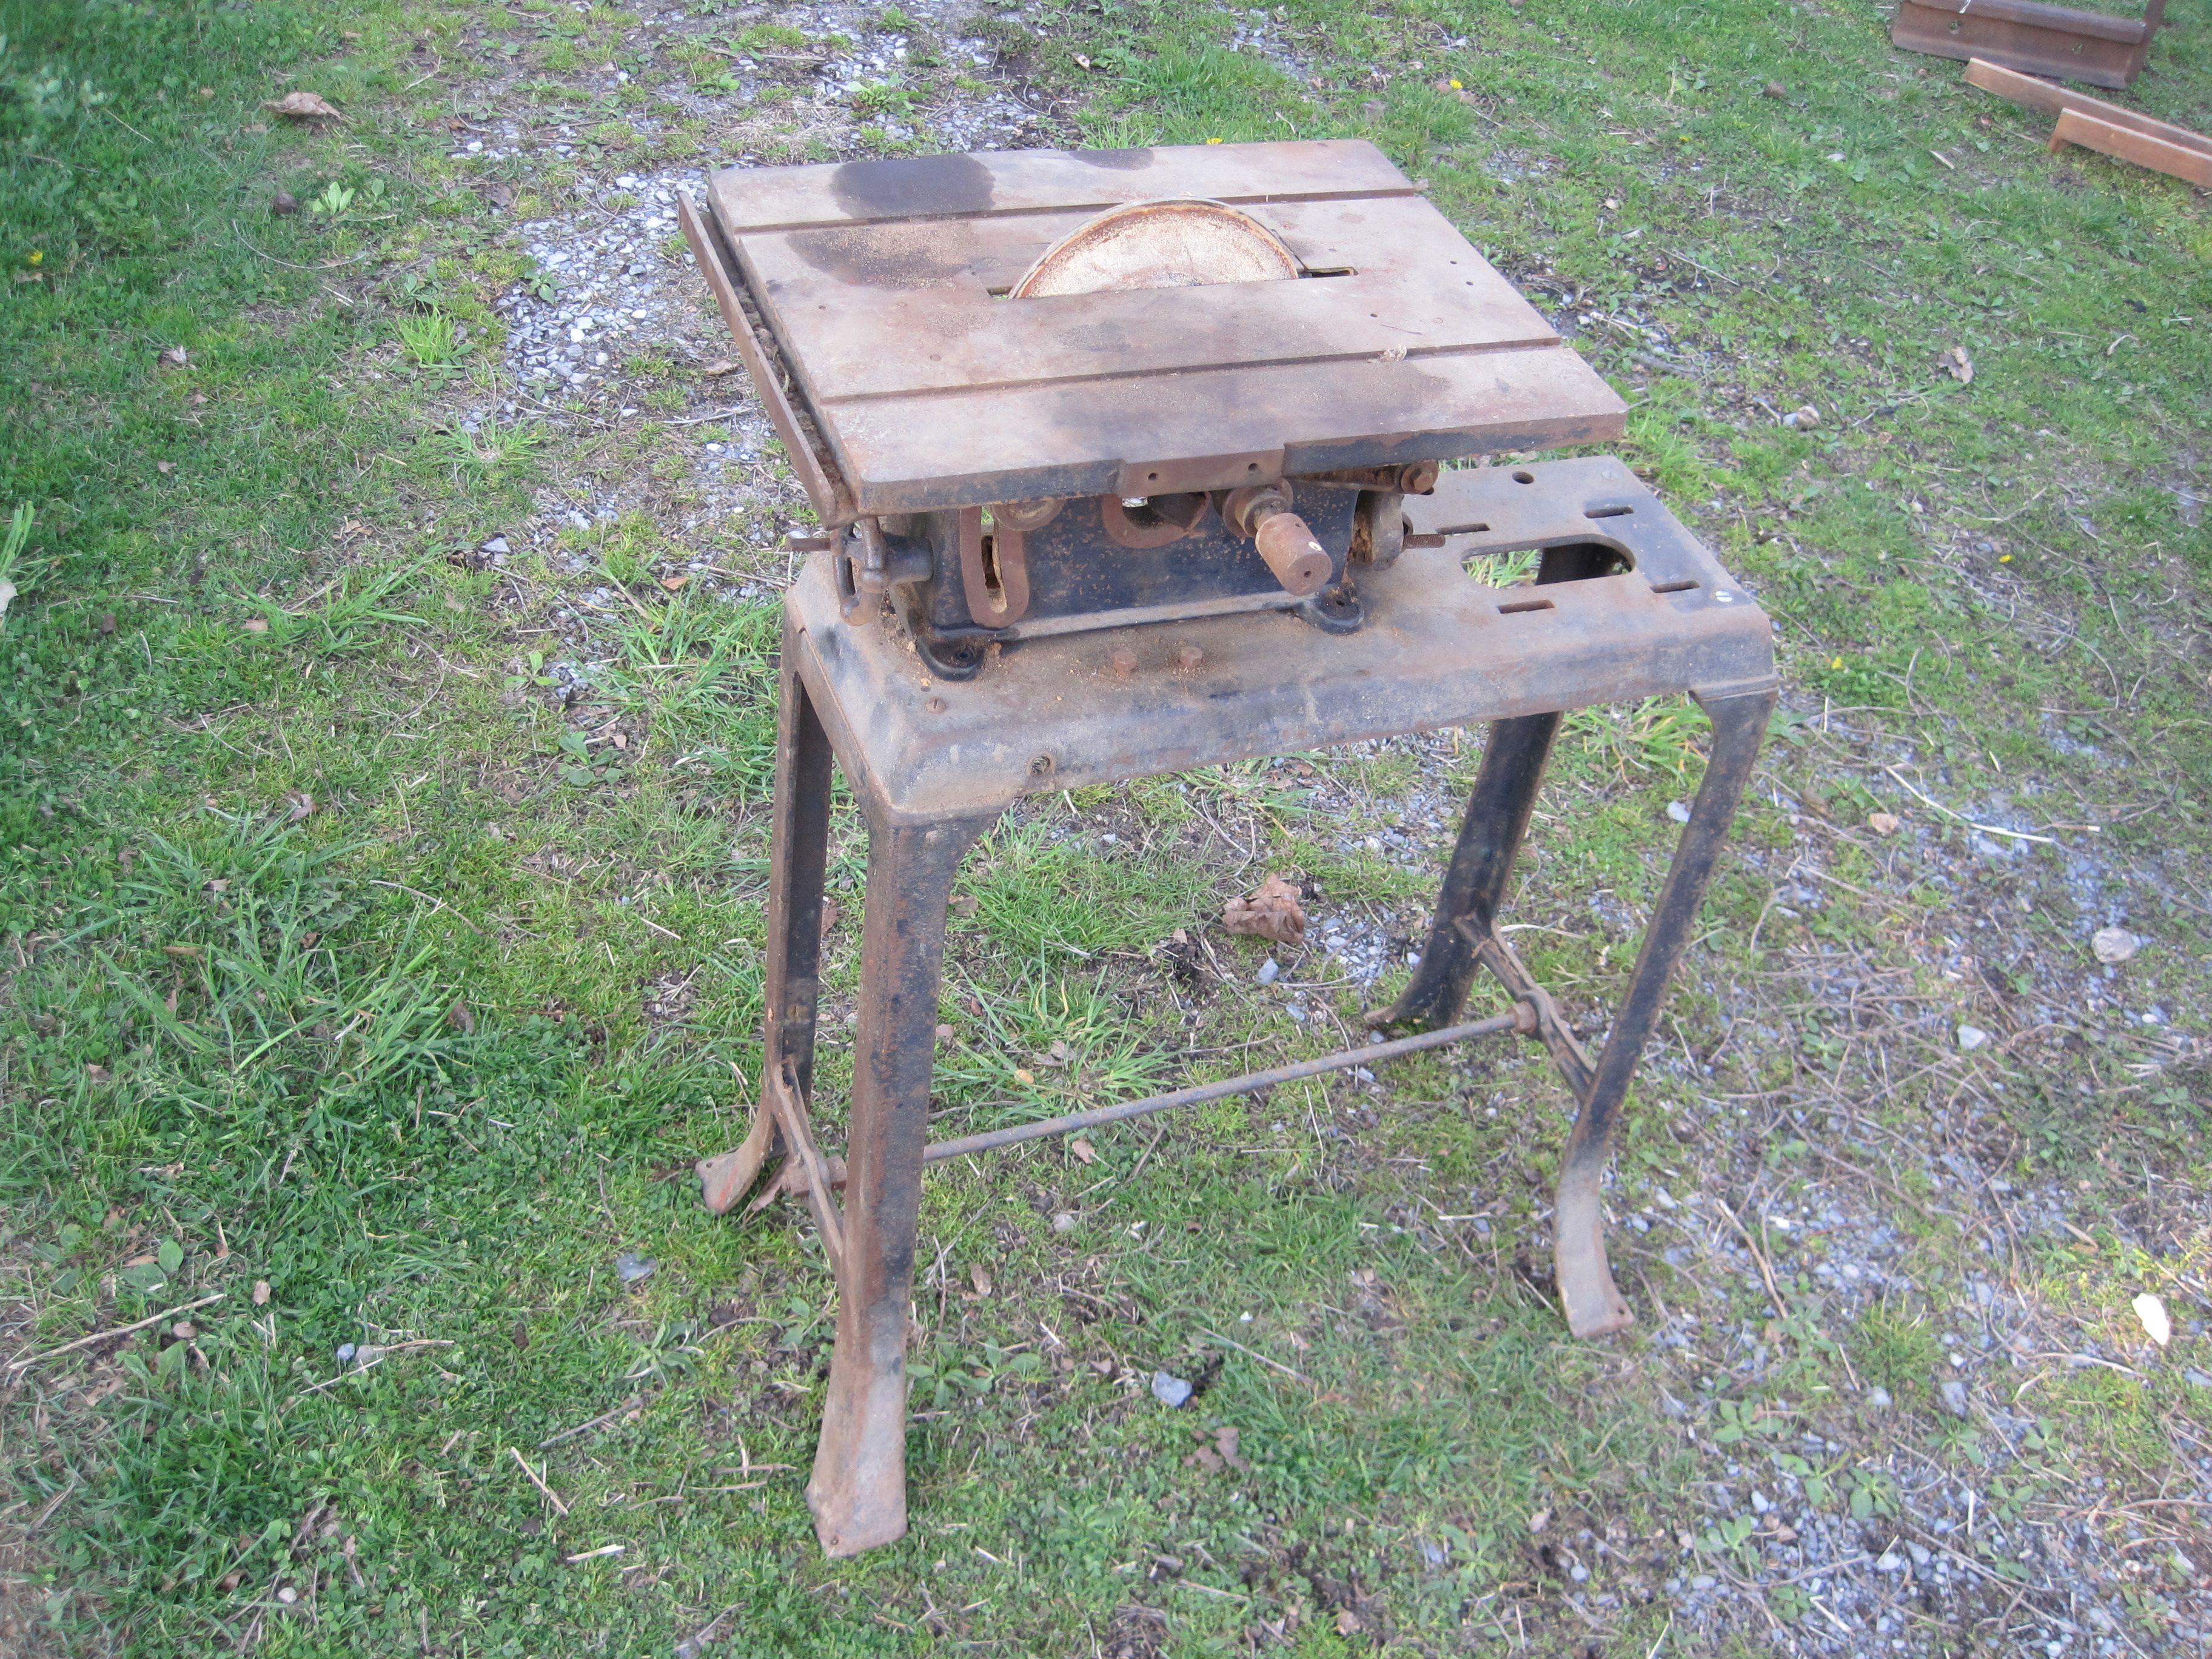 Vintage Small Table Saw On Original Cast Iron Stand, Converted To A Disc  Sander